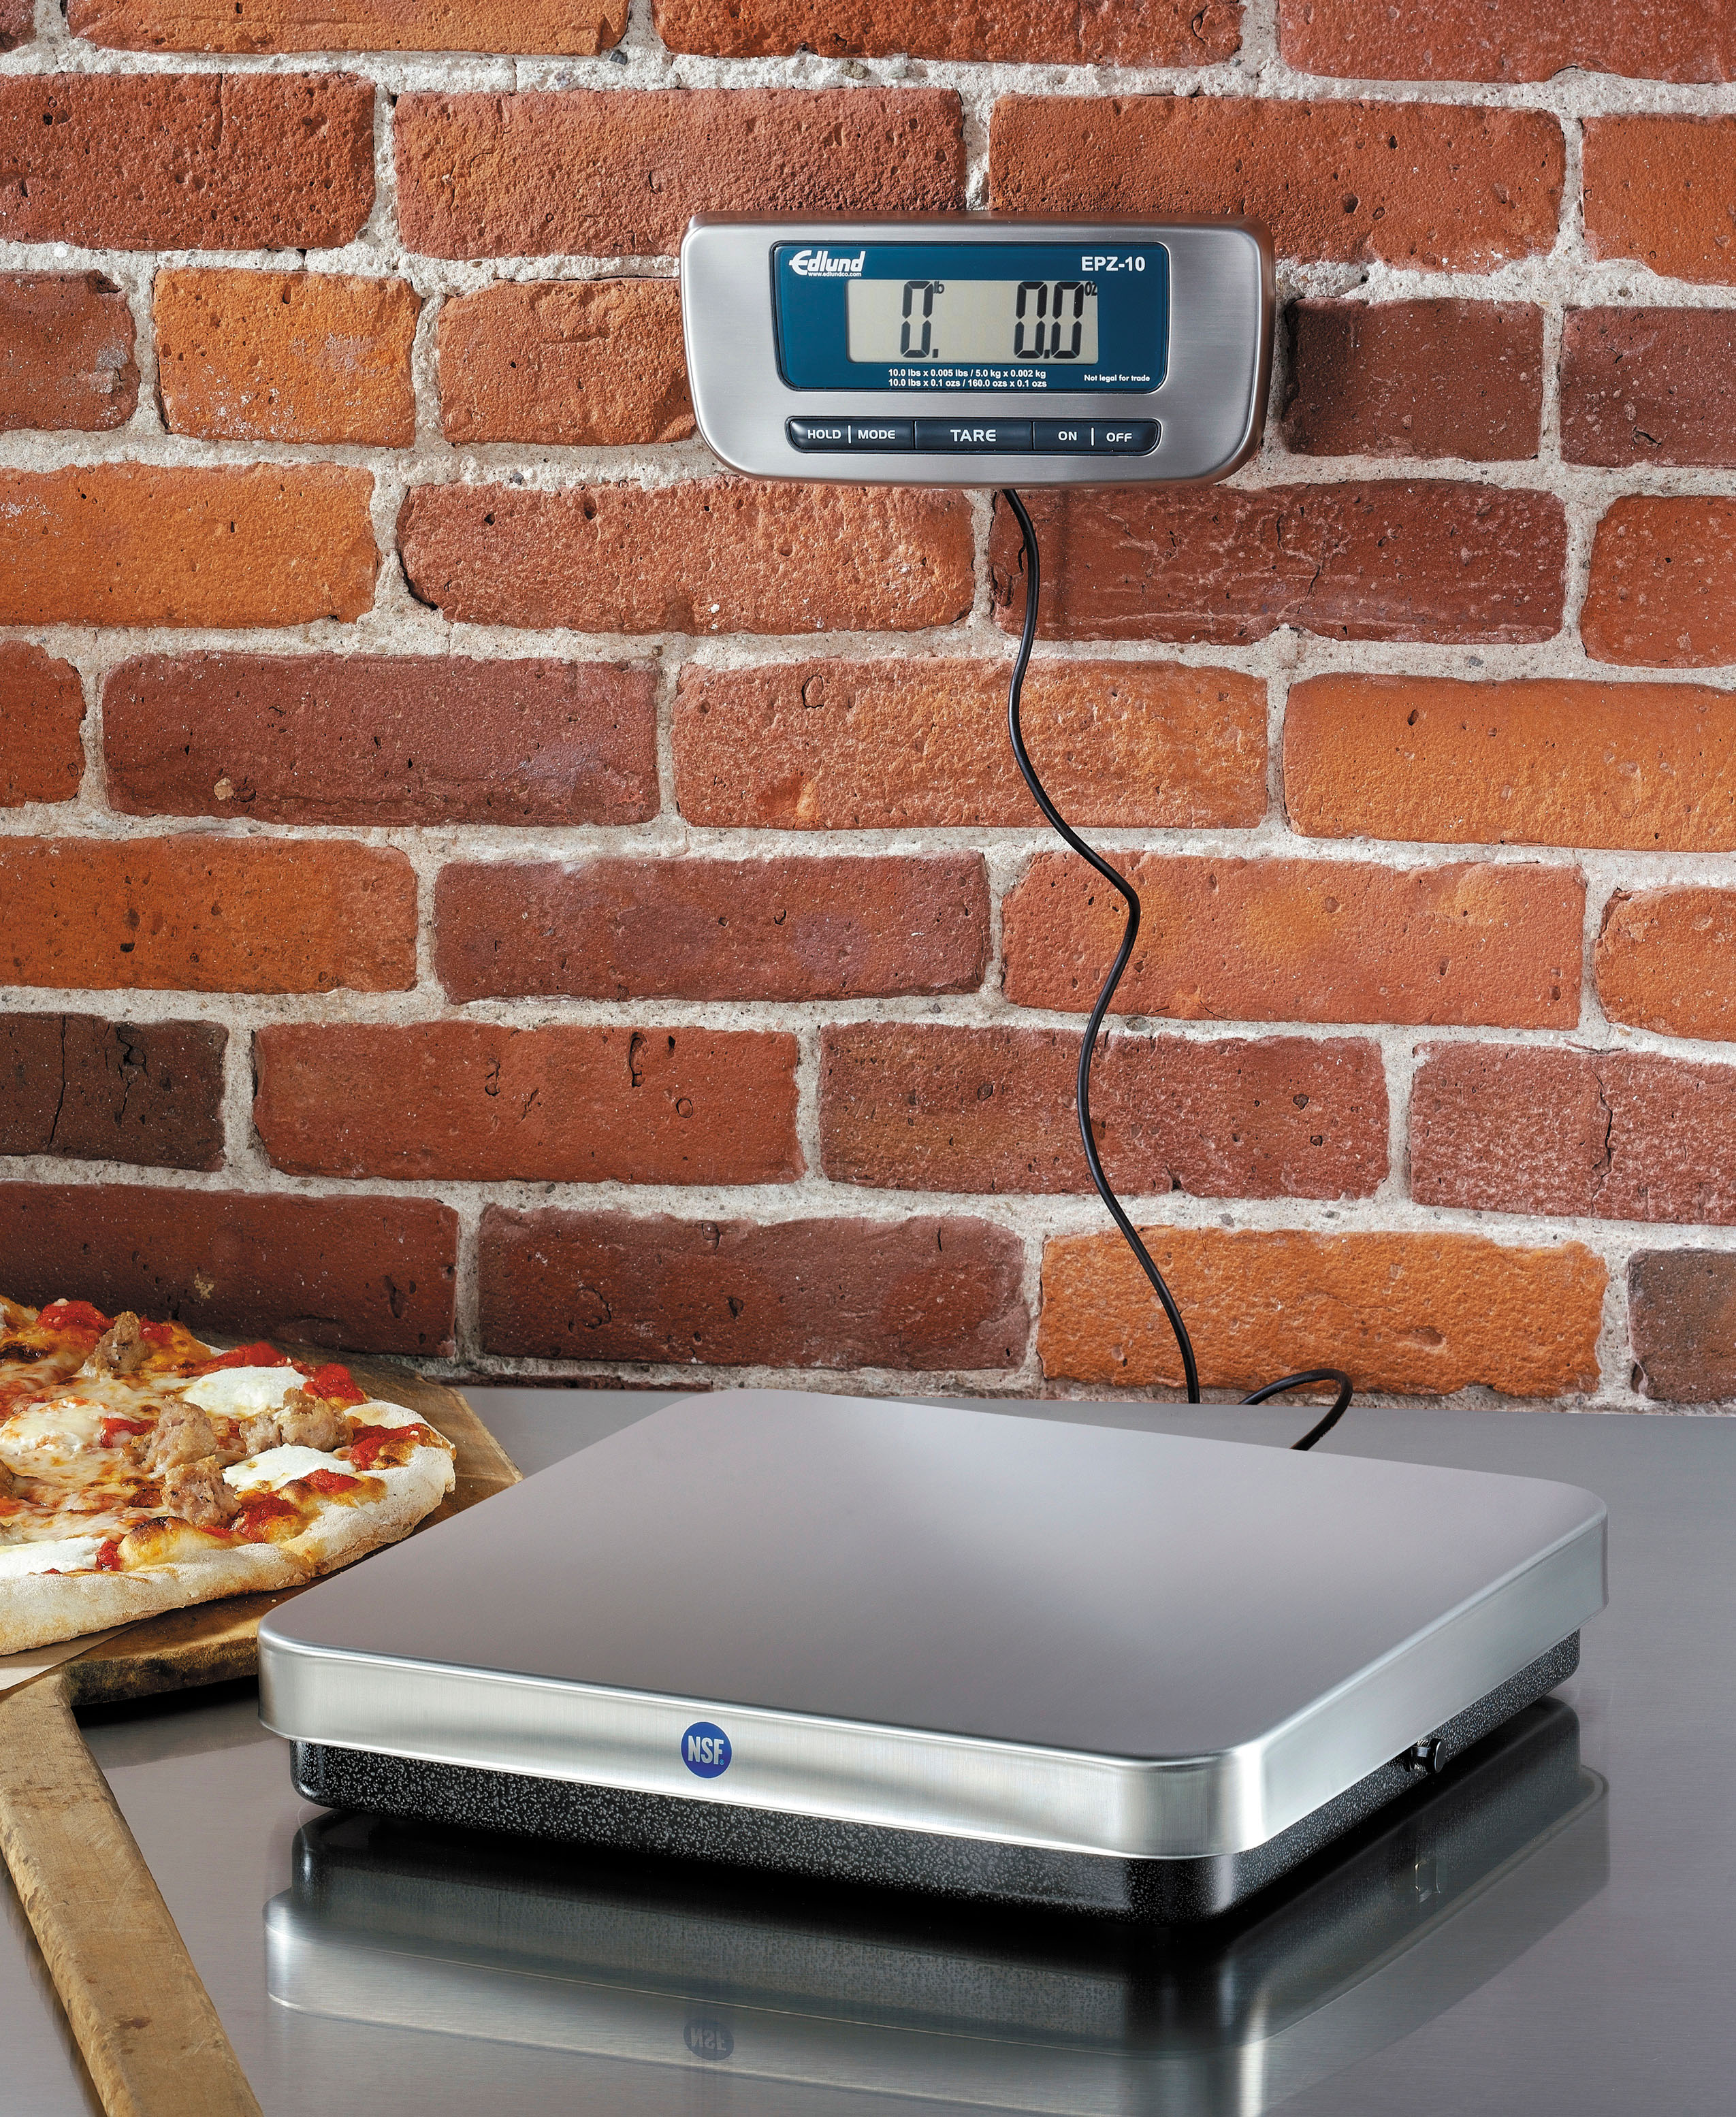 Edlund 5000 g Digital Metric Pizza Scale W/ Front Tare Button